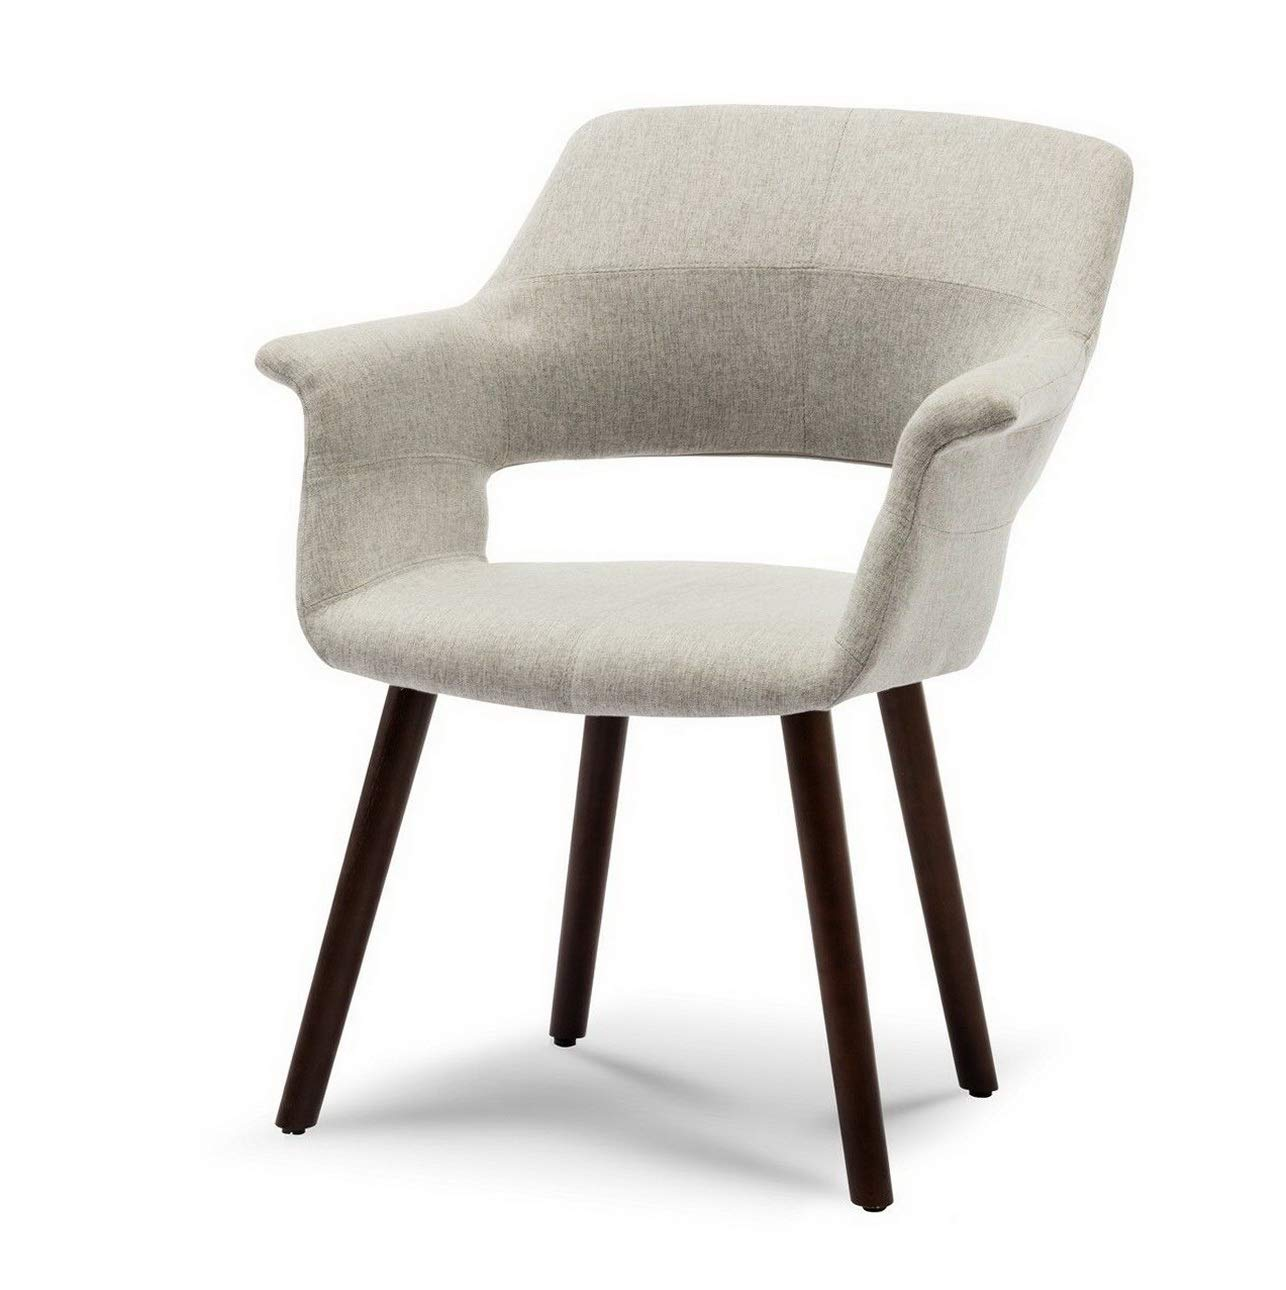 Amazon.com: Hebel Mid-Century Modern Accent Chair Linen Living Room ...